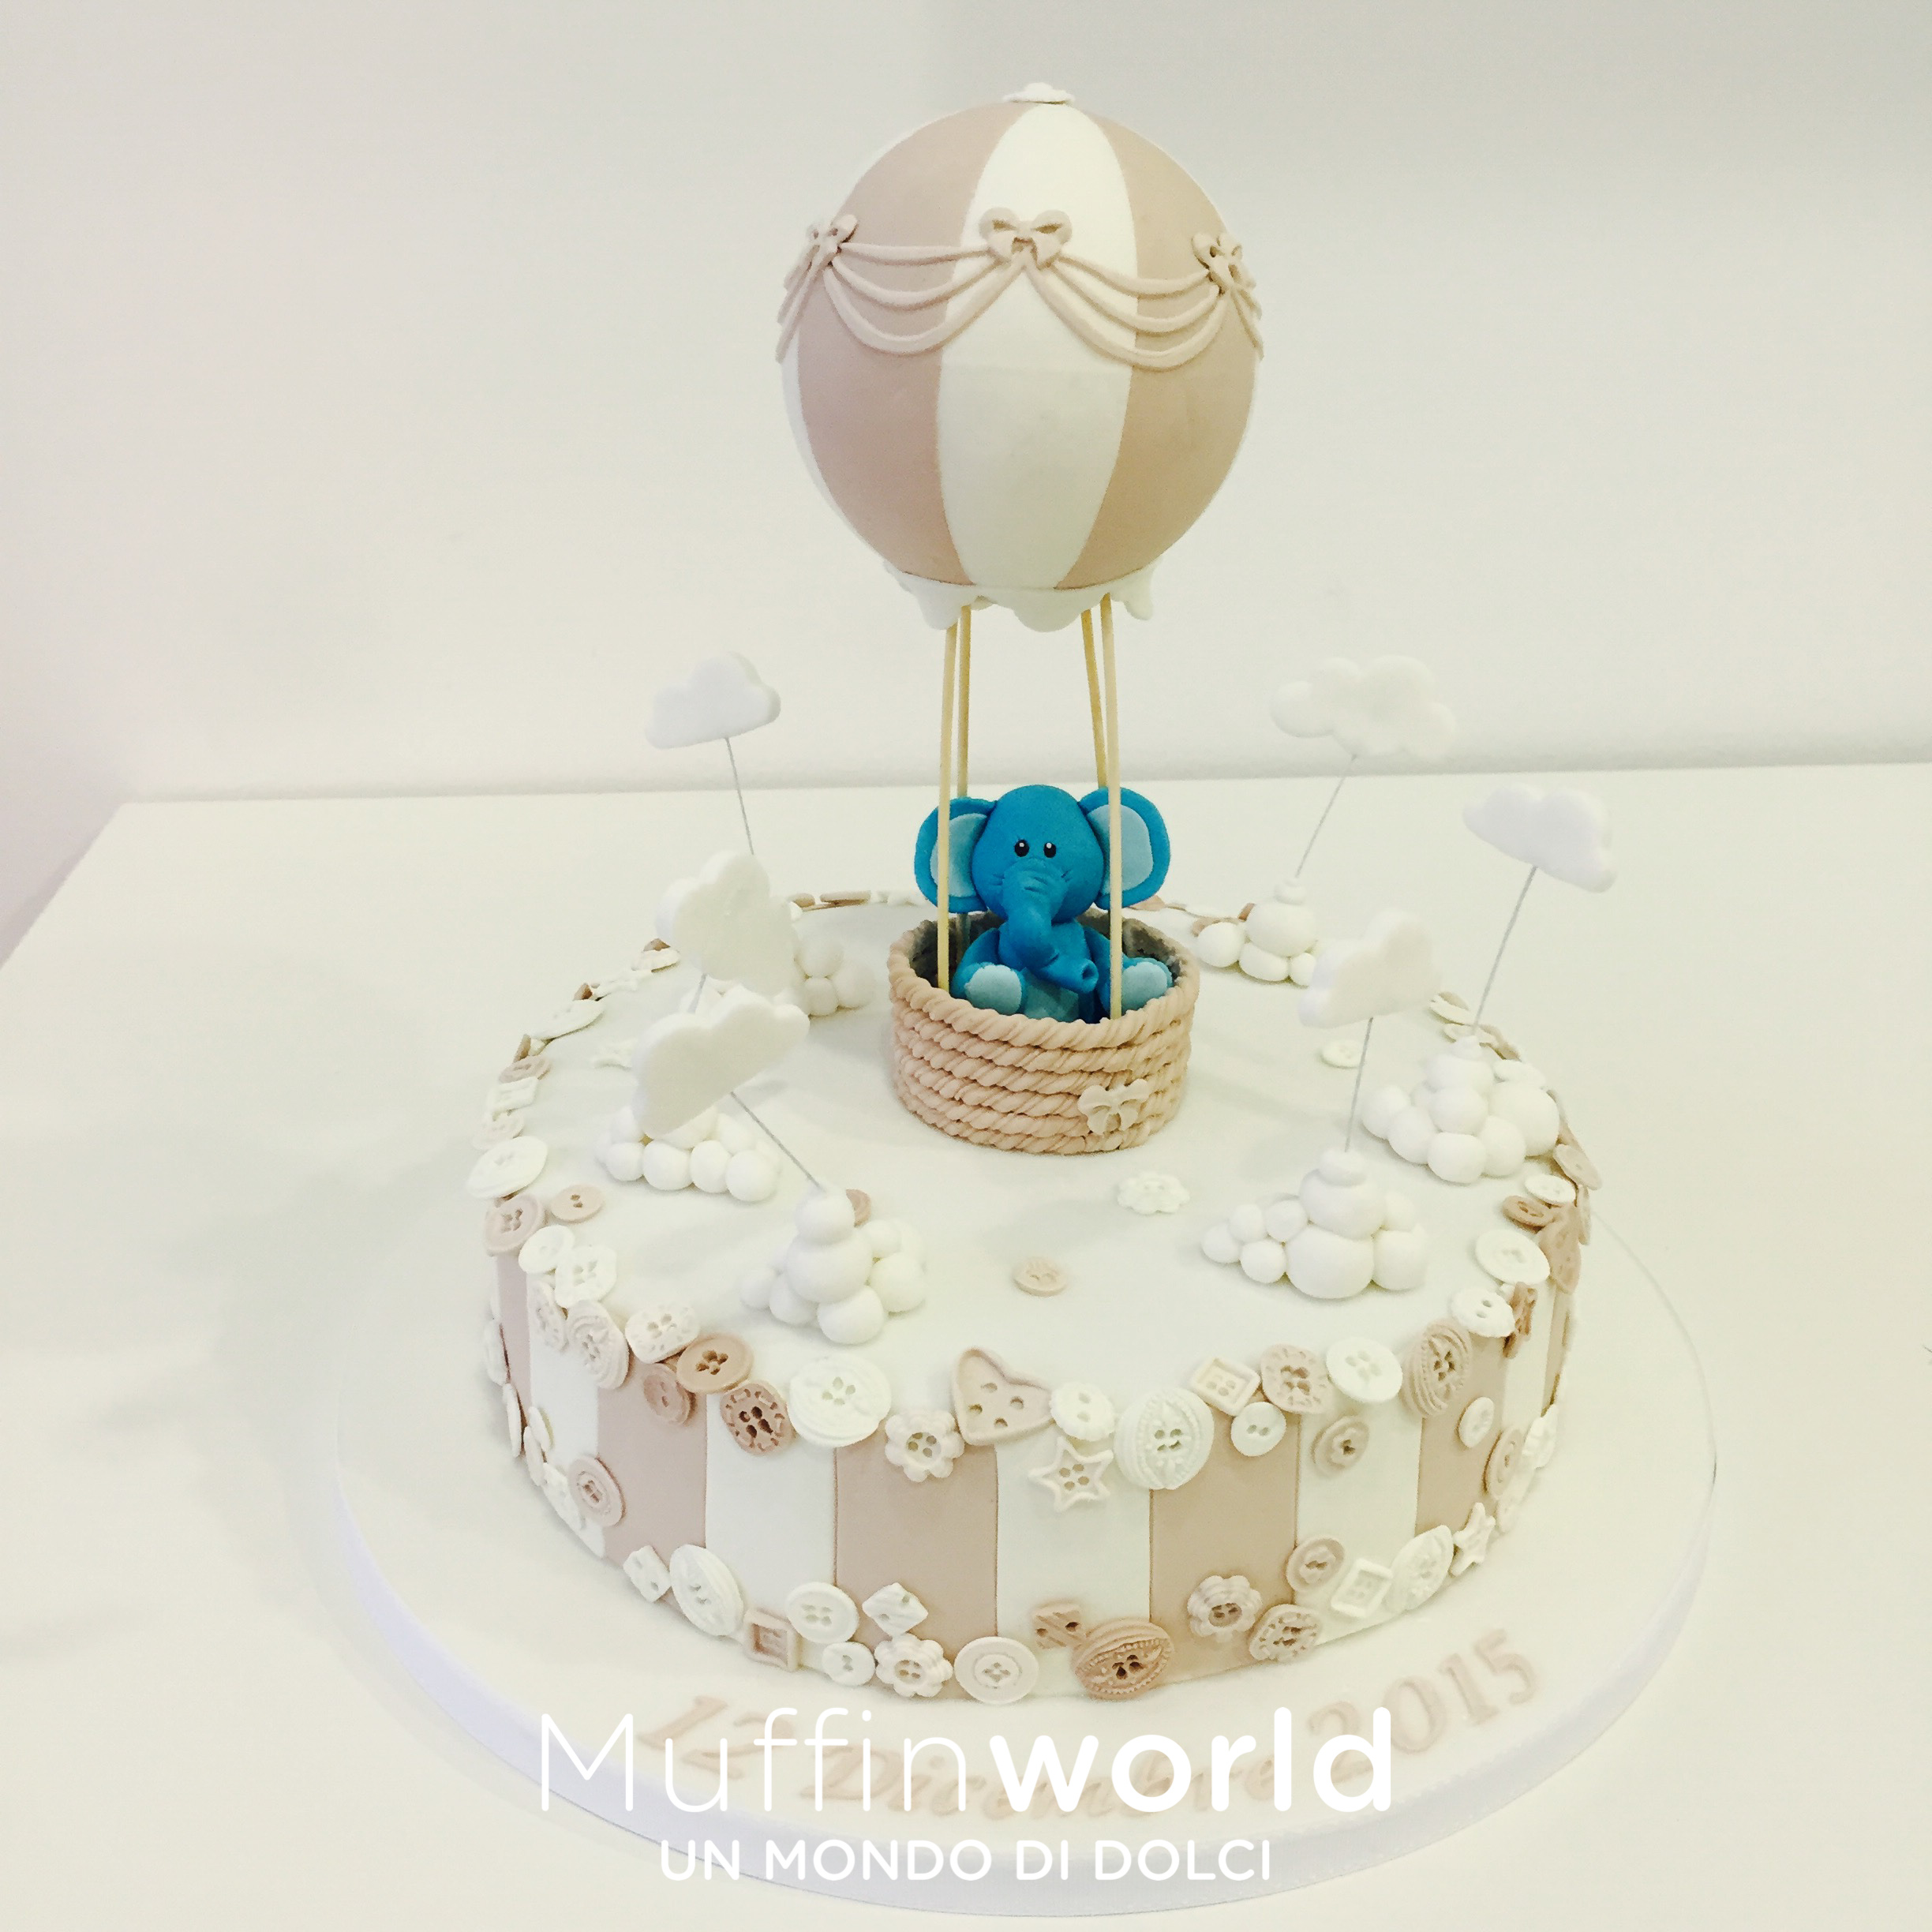 Exceptionnel Torte Decorate - Muffinworld OM49